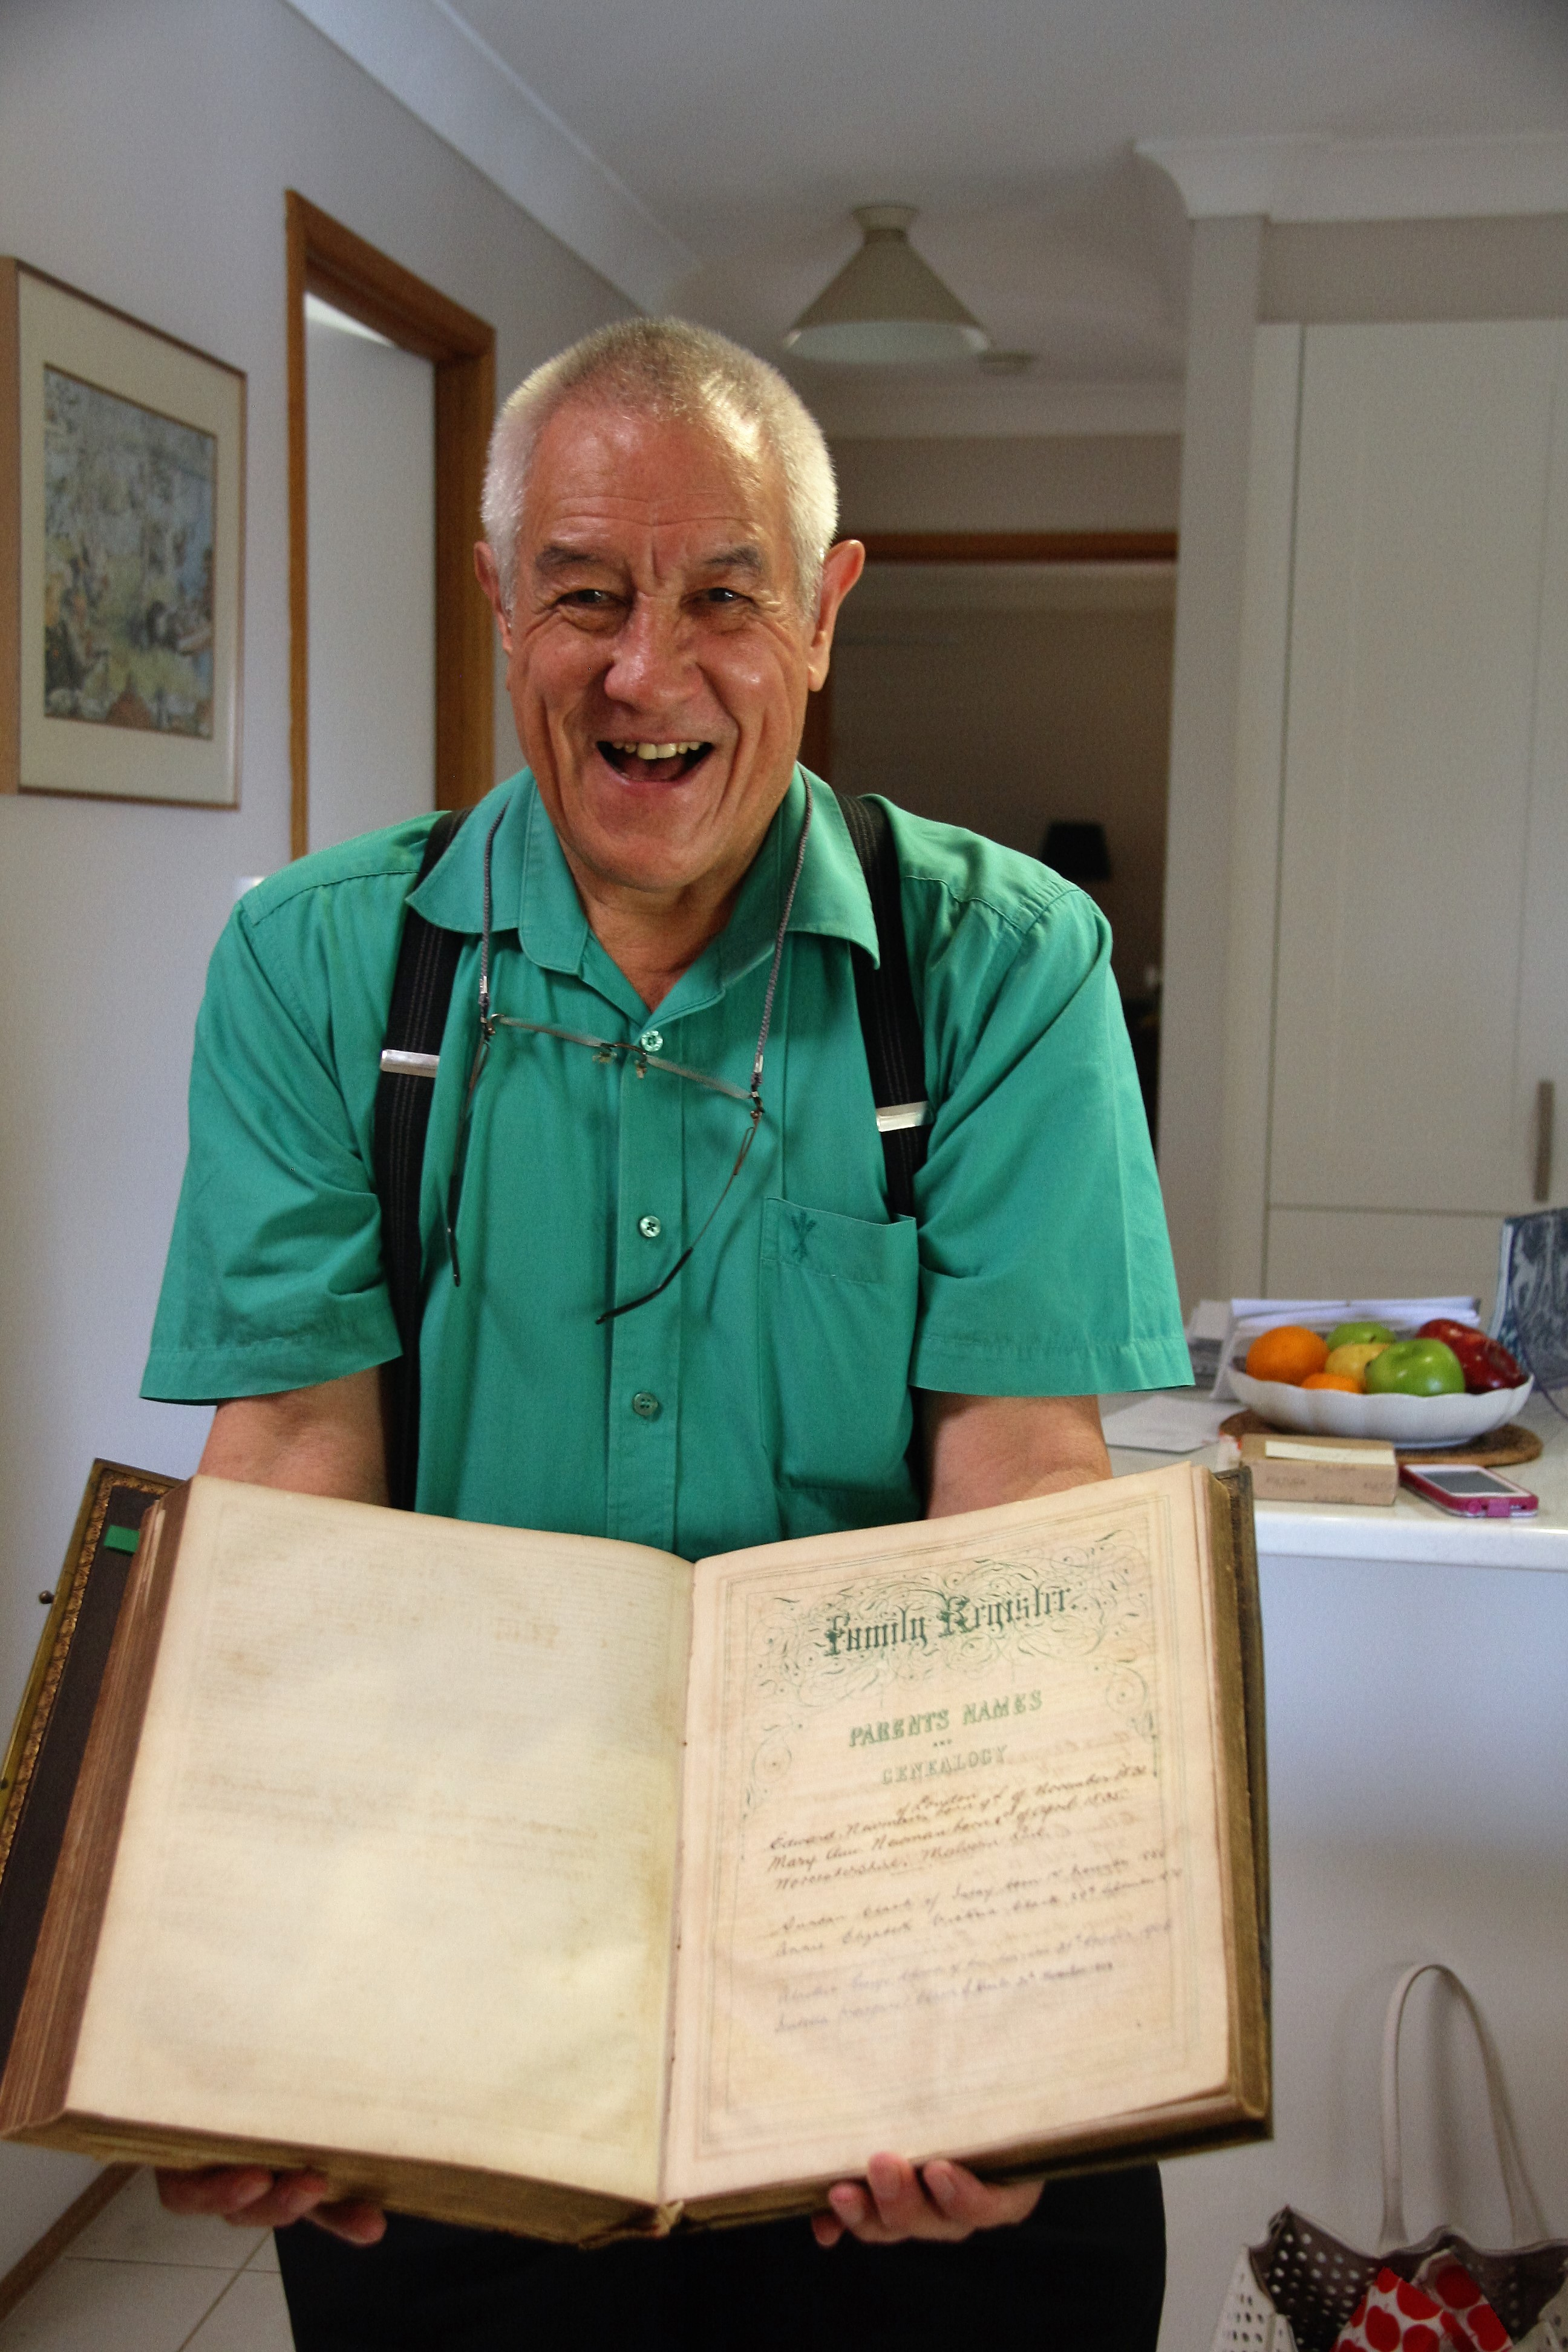 Holding the Newman Family Bible, with birth details of my great-grandparents Edward and Mary Ann Newman.